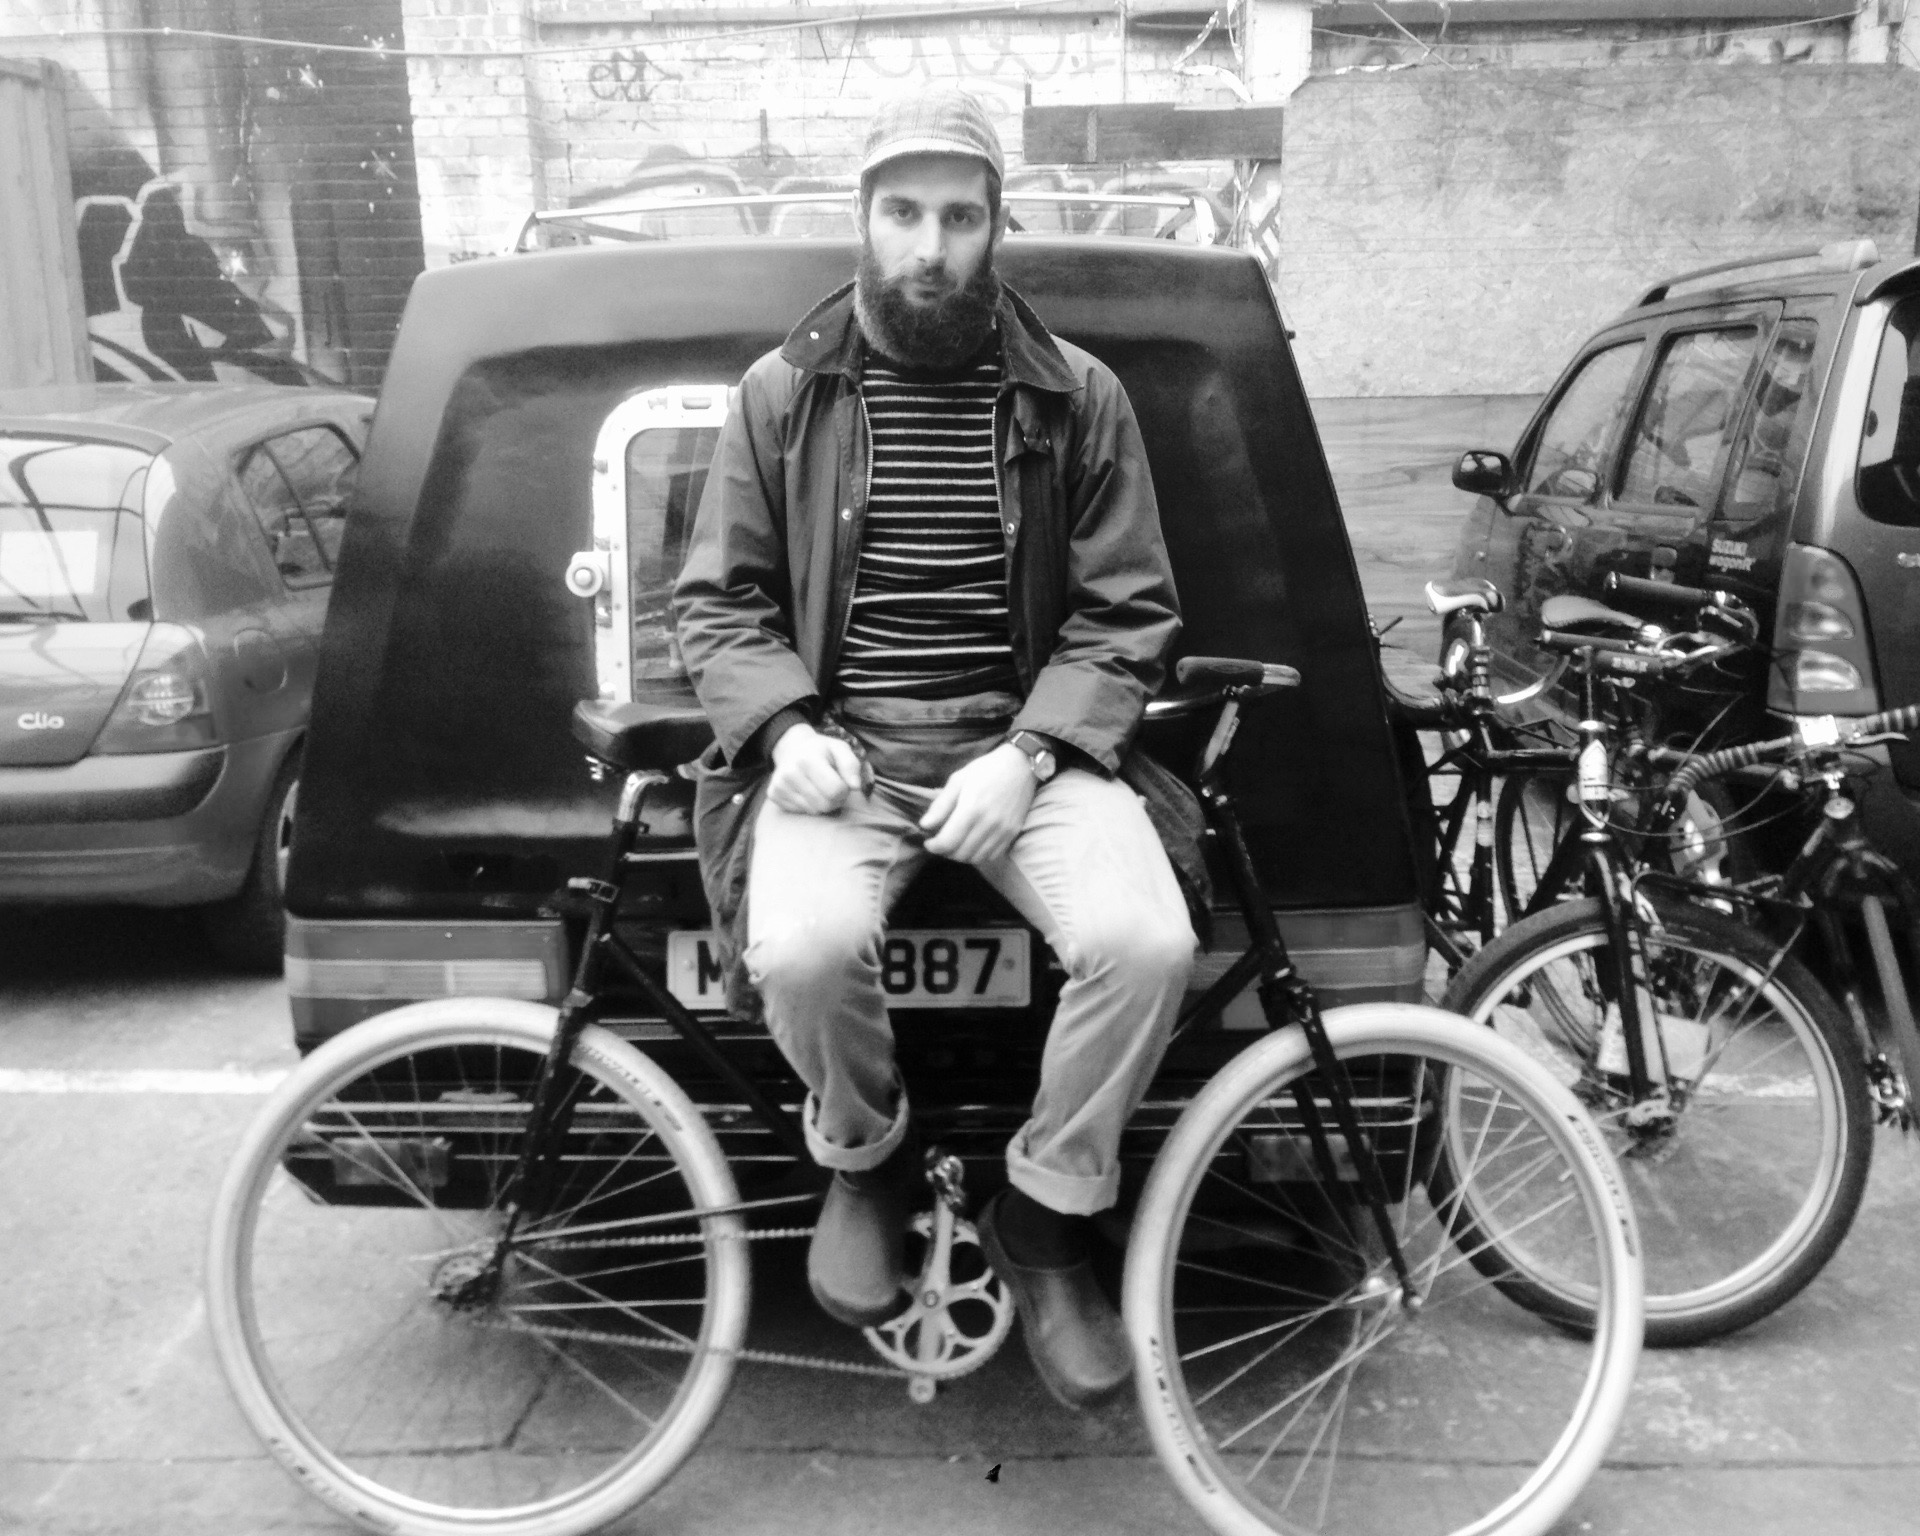 Petor Georgallou, his Edward Gorey inspired bike and Dear Susan hearse